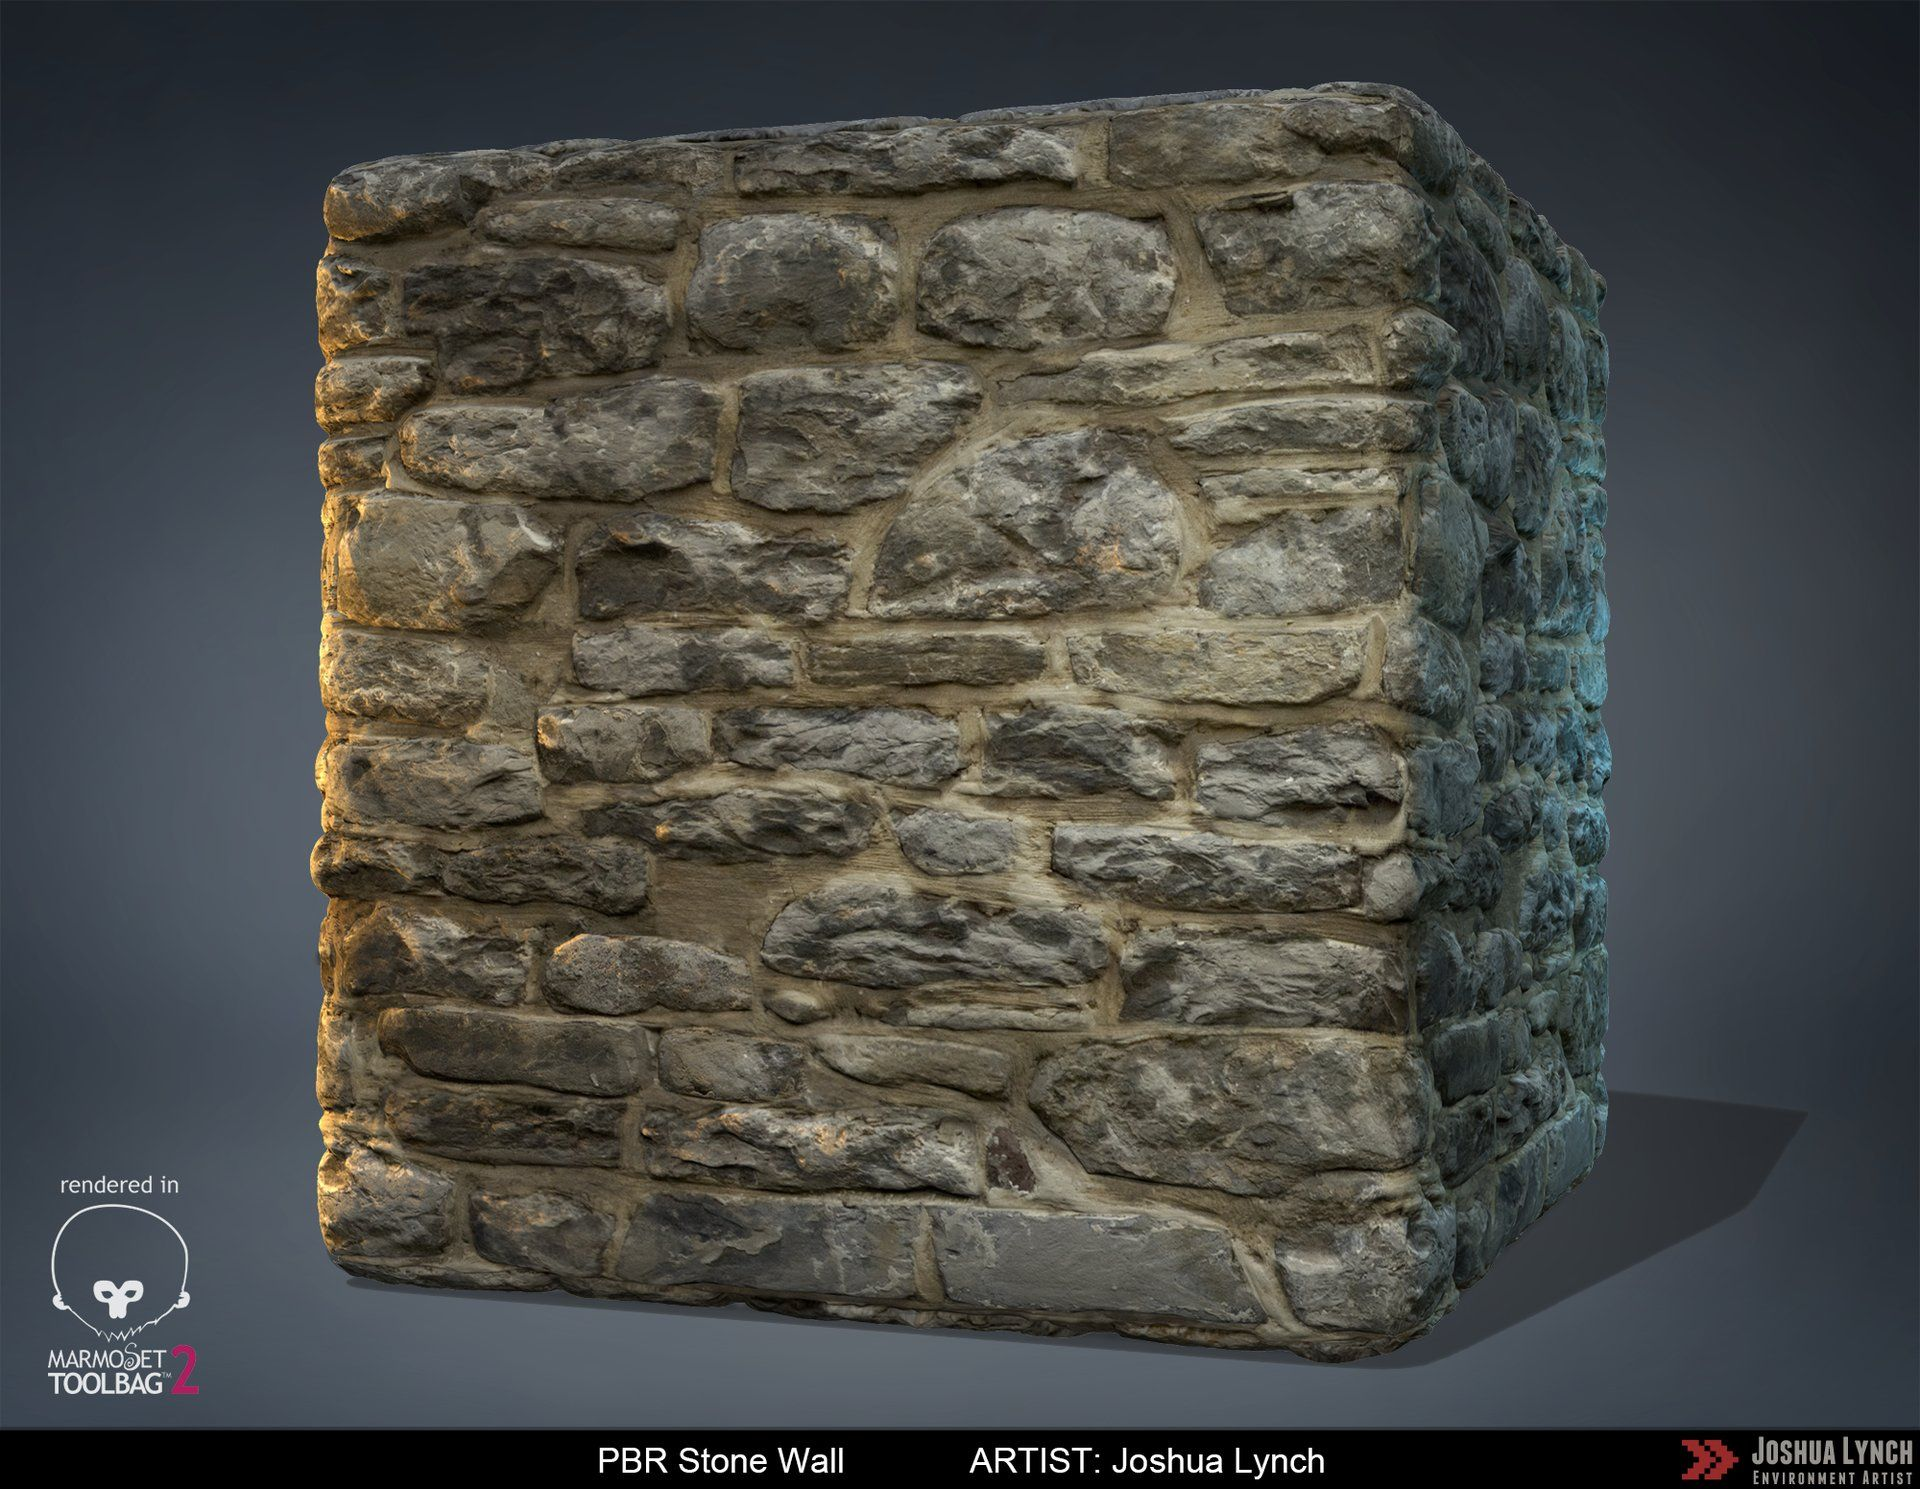 Download link httpsgumroadartofjoshlynch i have created a pbr stone wall sculpted in zbrush textured in photoshop rendered in marmoset baditri Gallery